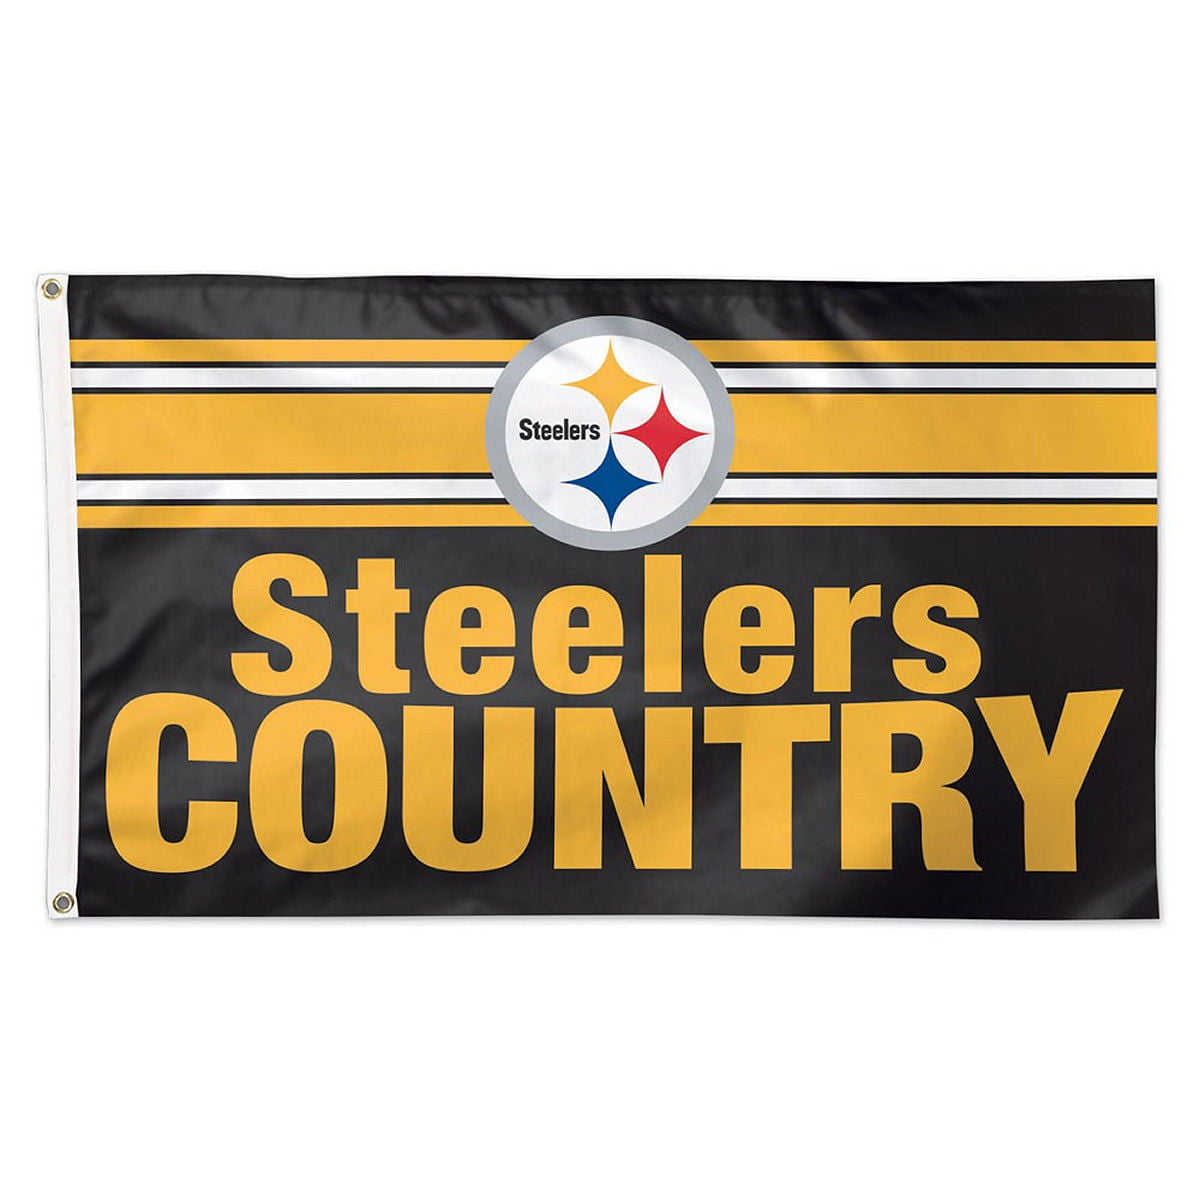 NFL Pittsburgh Steelers Steelers Country 3' x 5' Flag by Wincraft